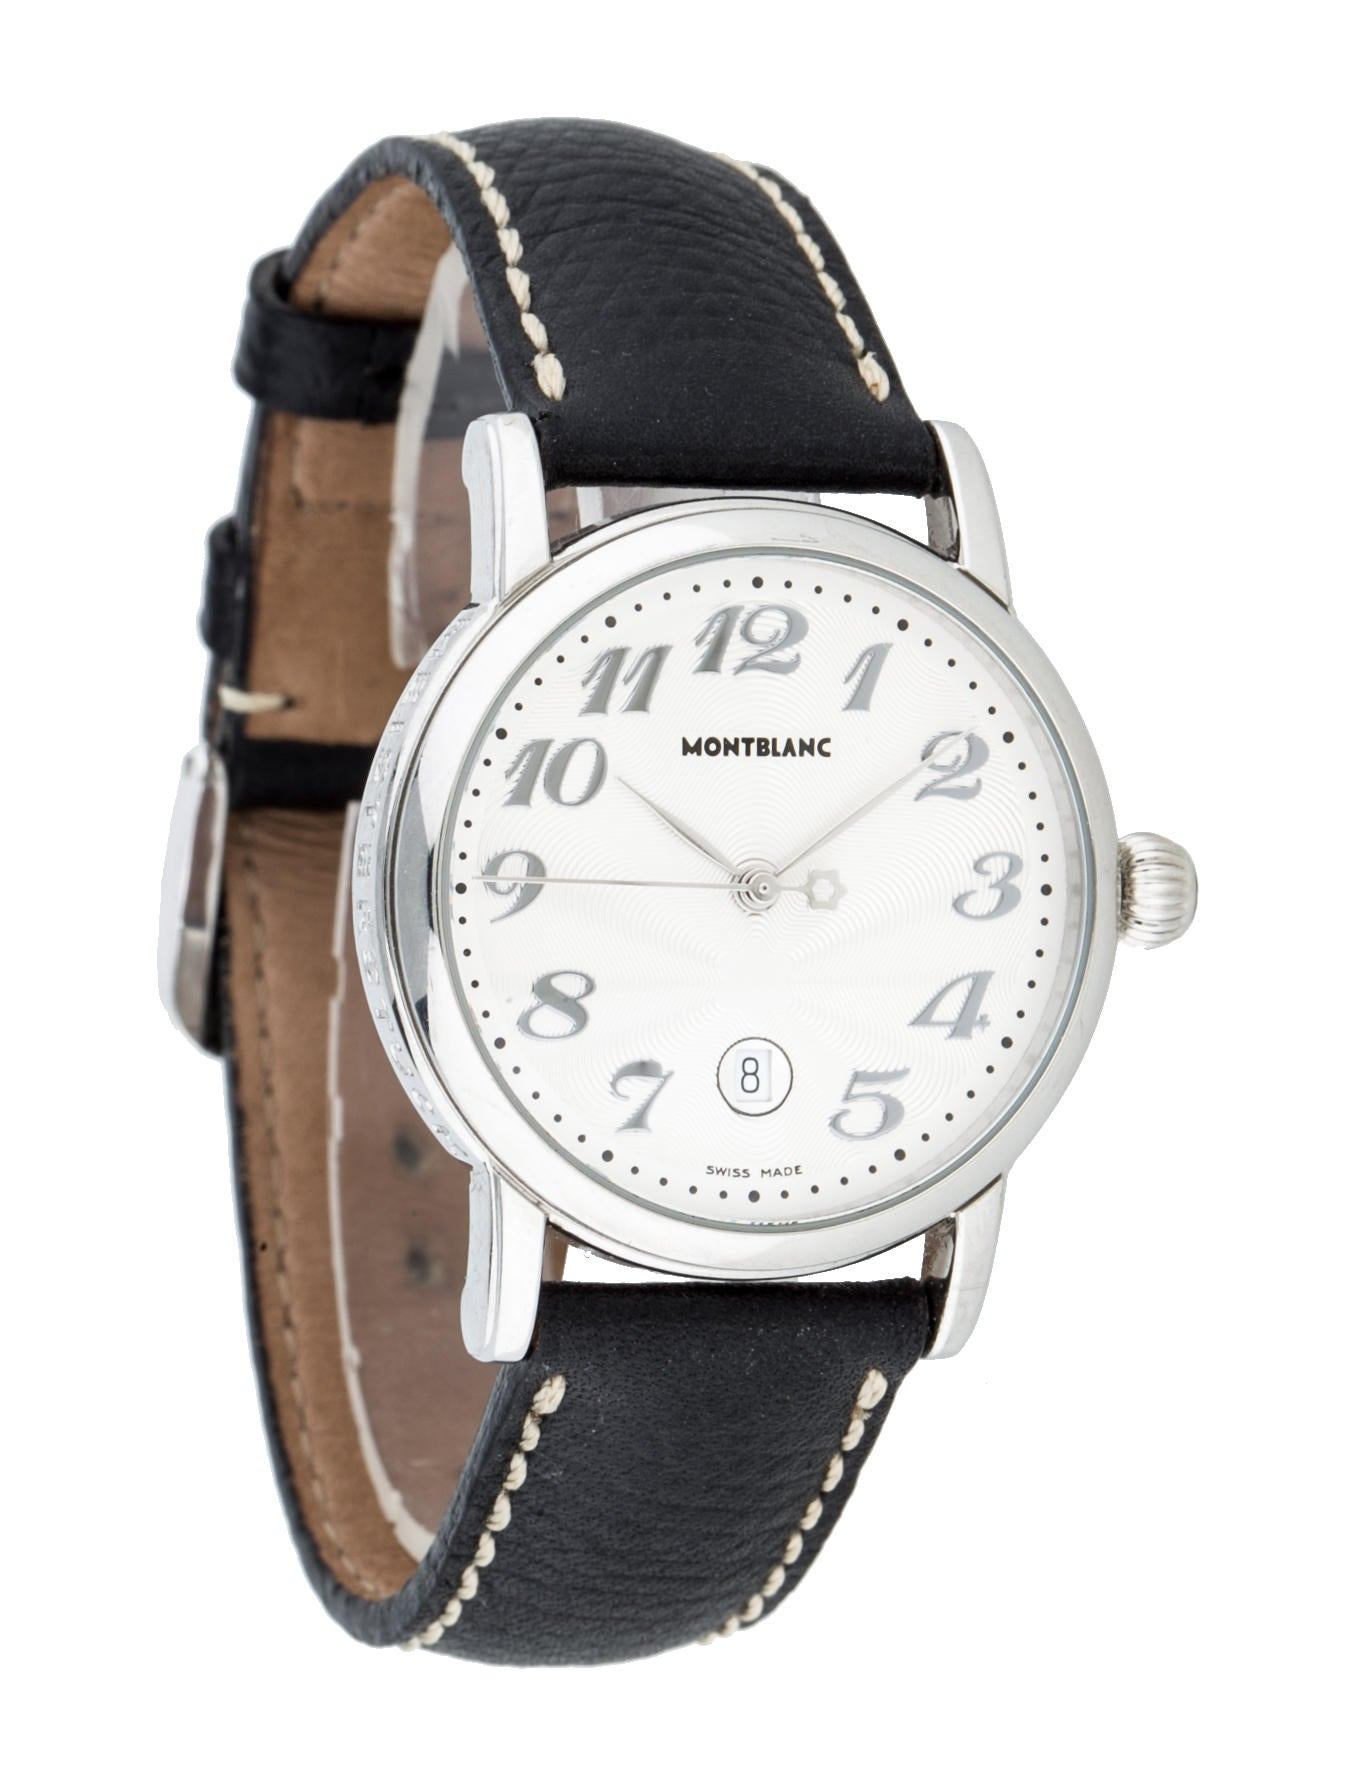 Montblanc meisterstuck watch strap mbl20195 the realreal for Montblanc watches